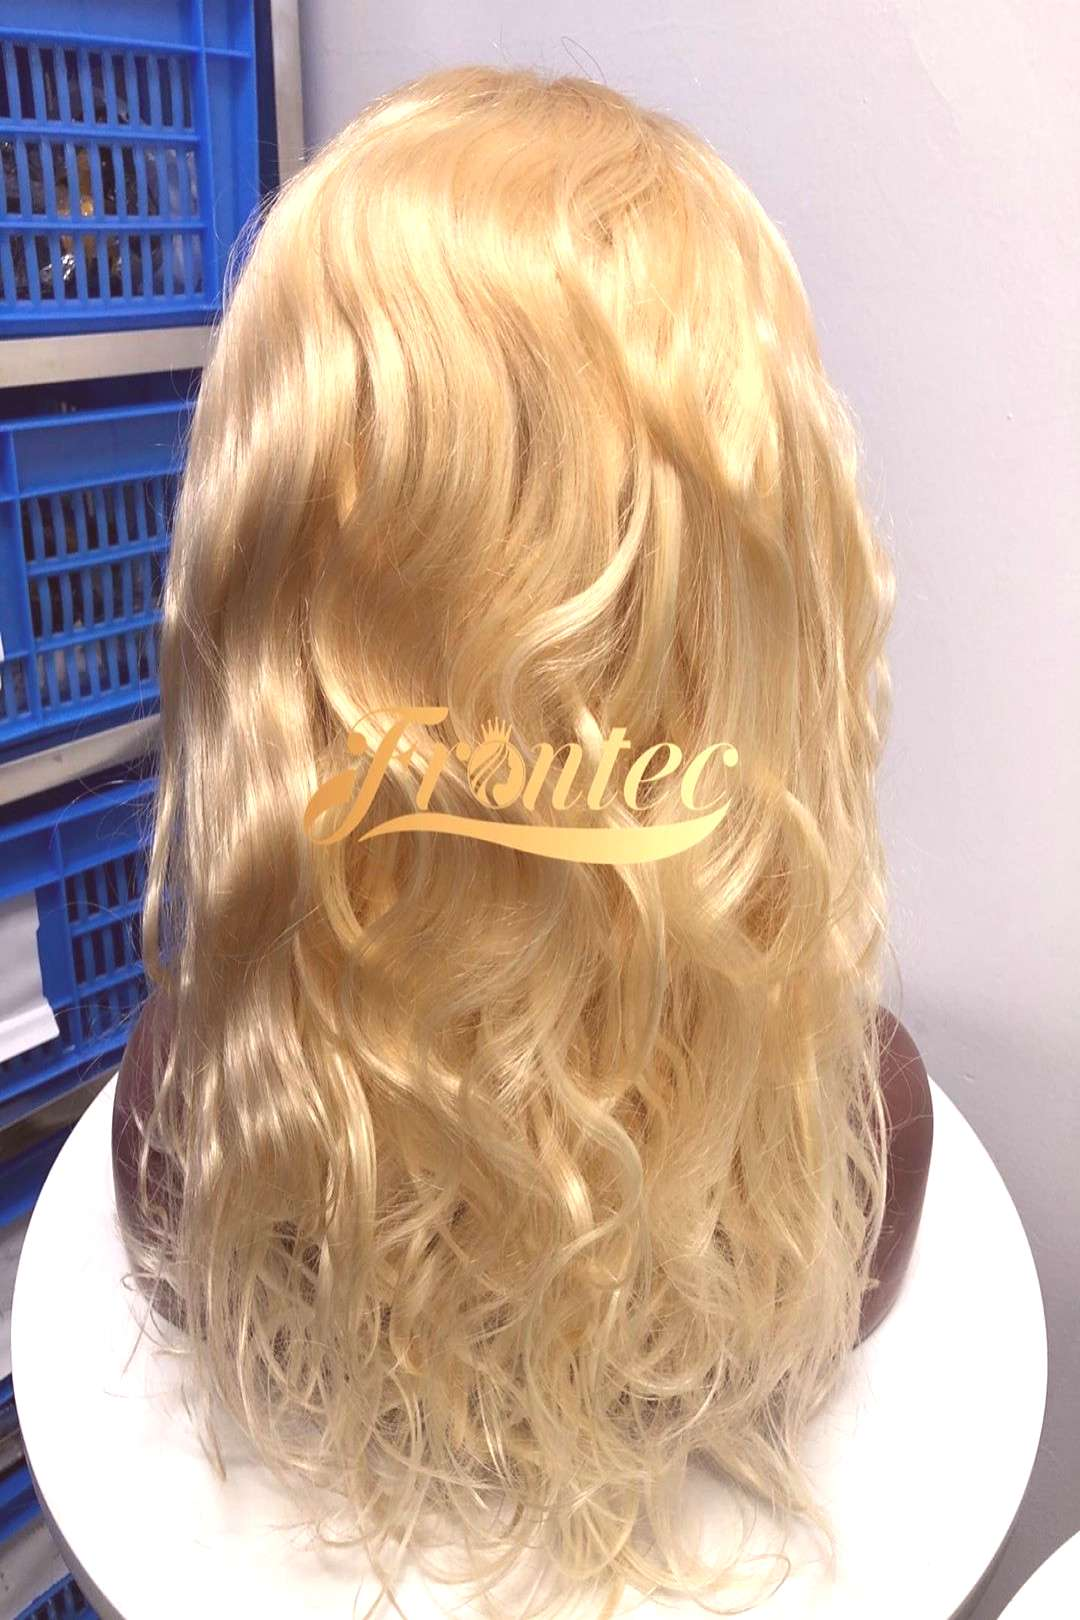 Wholesalewigs Custom Wigs on April 23 2020 one or more people